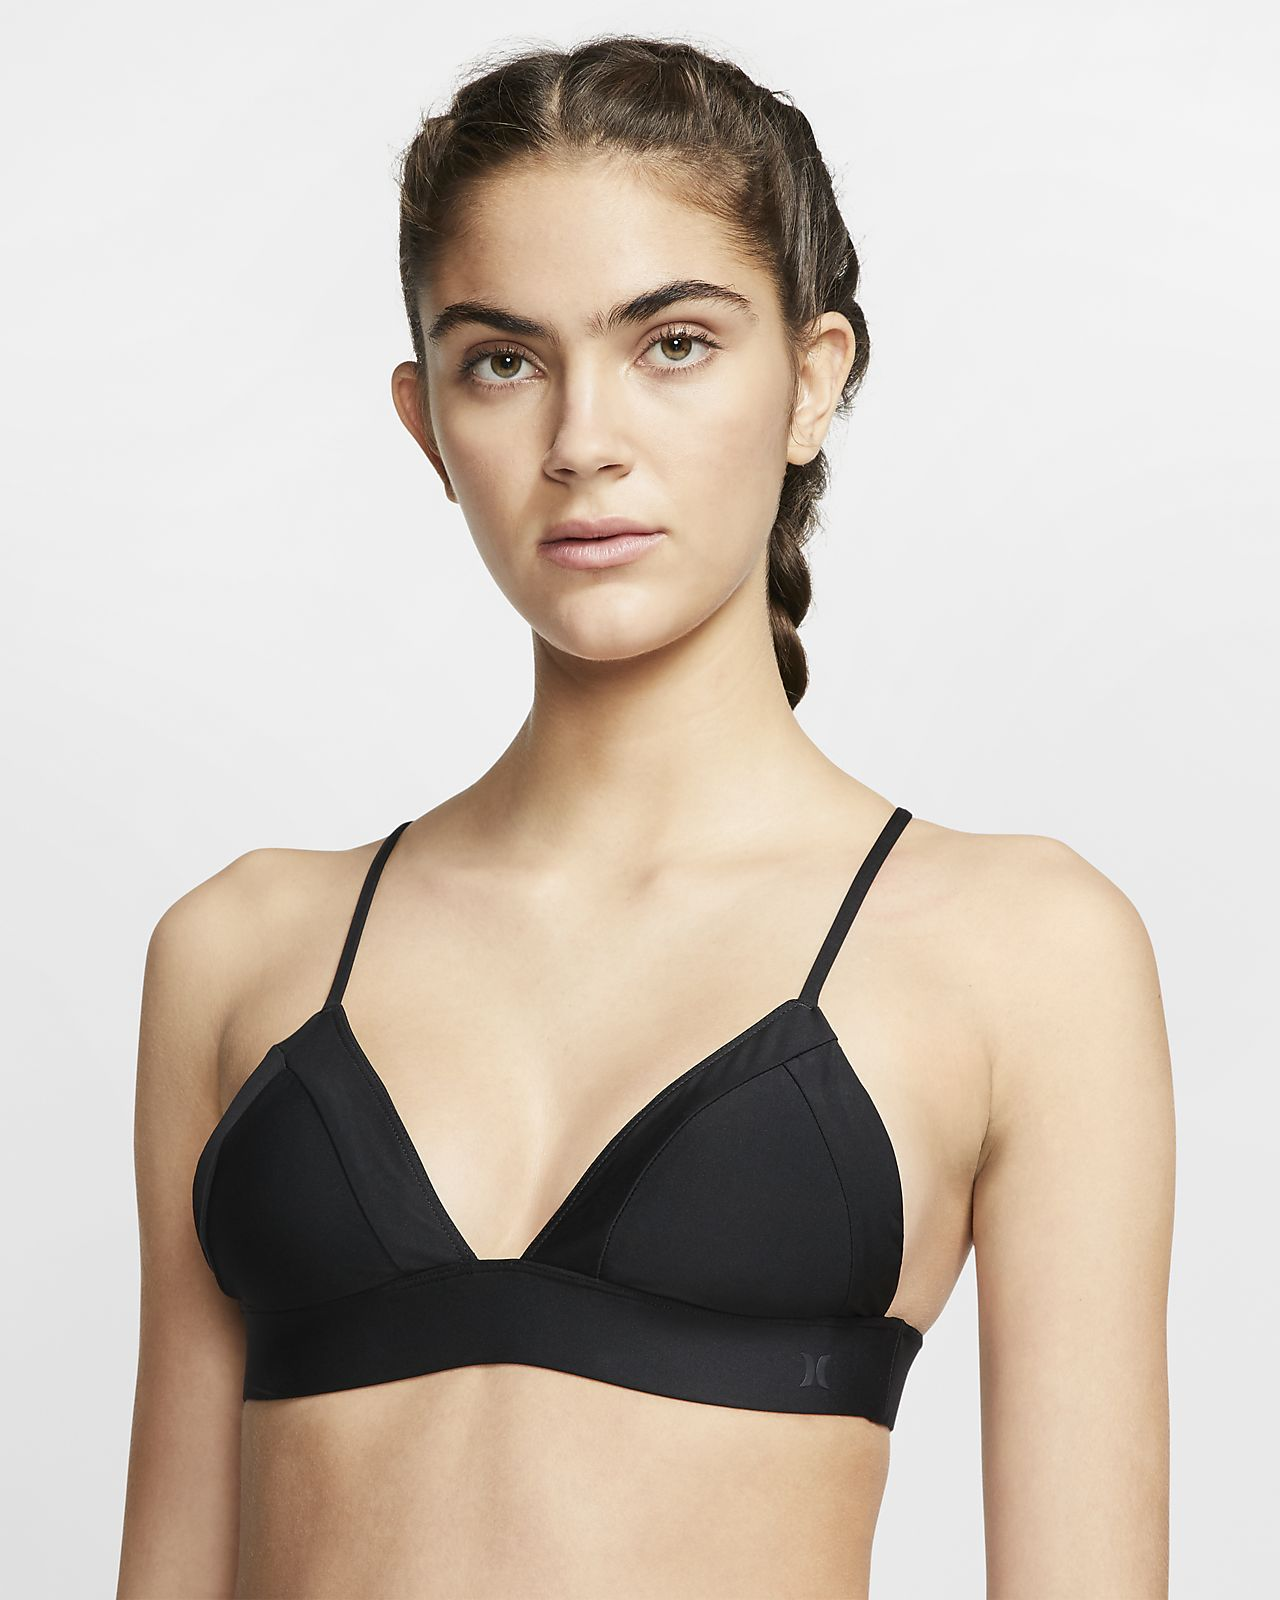 Hurley Quick Dry Bralette Women's Surf Top